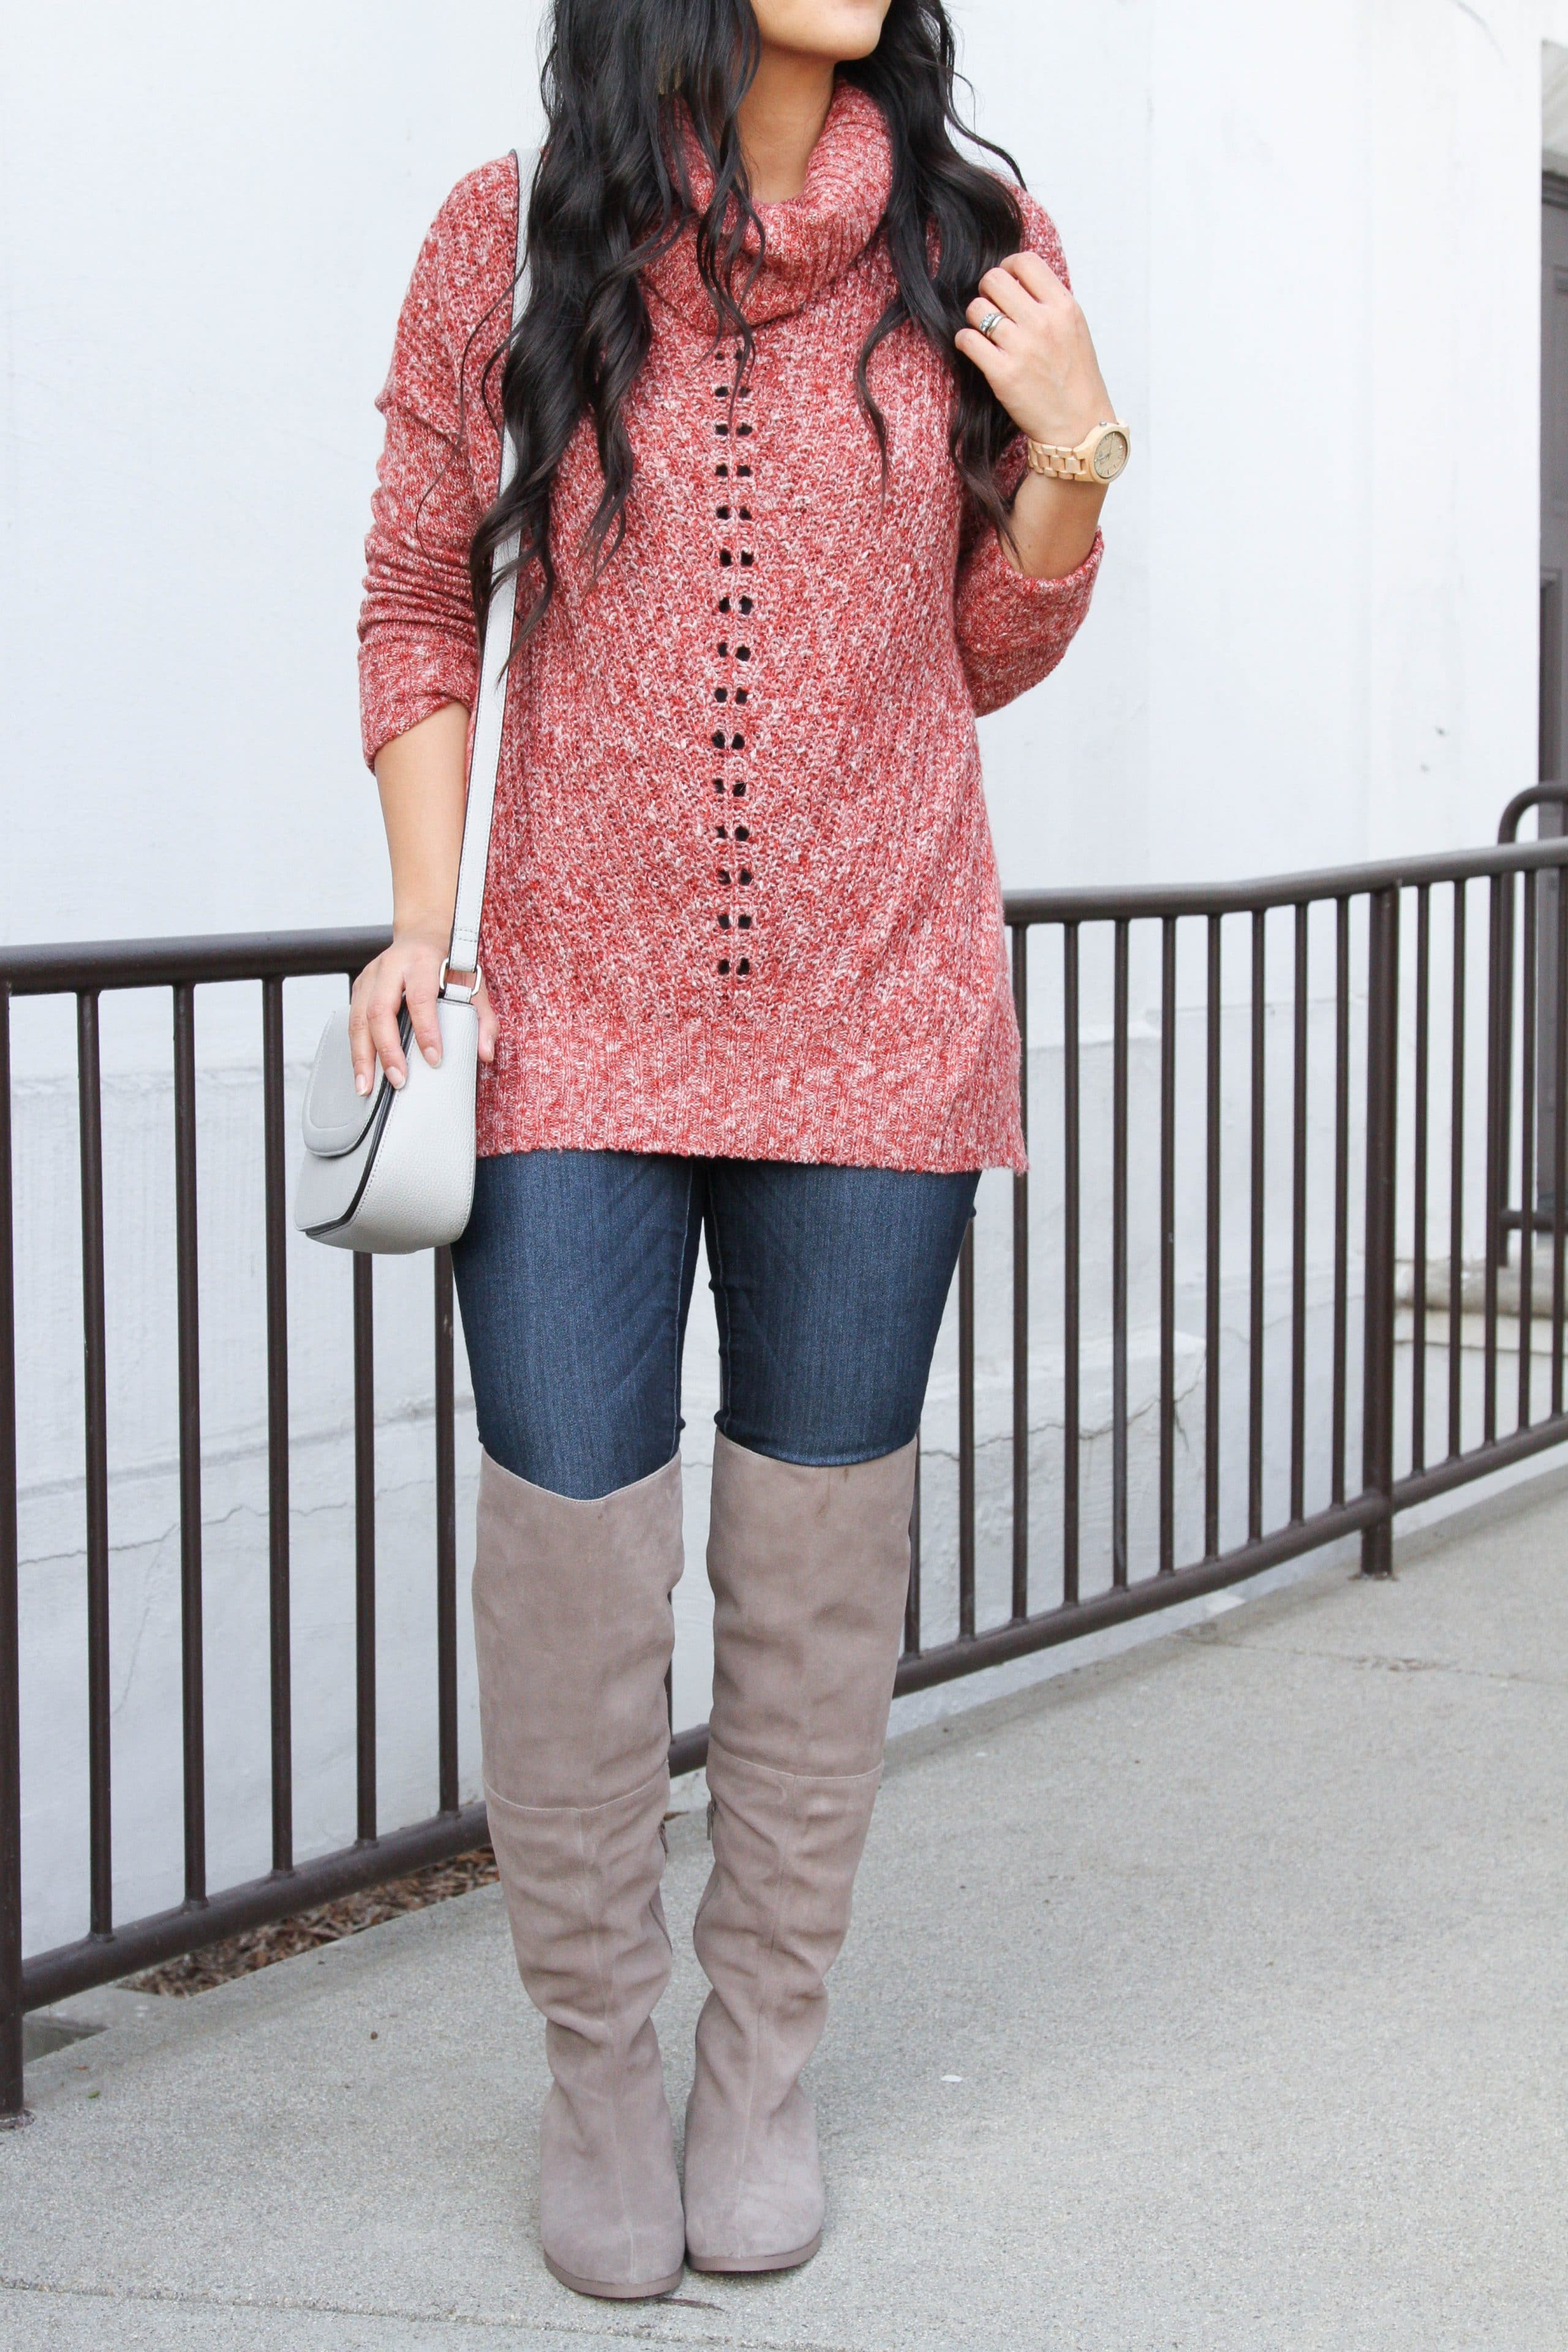 Skinnies + Over Knee Boots + Tunic Sweater